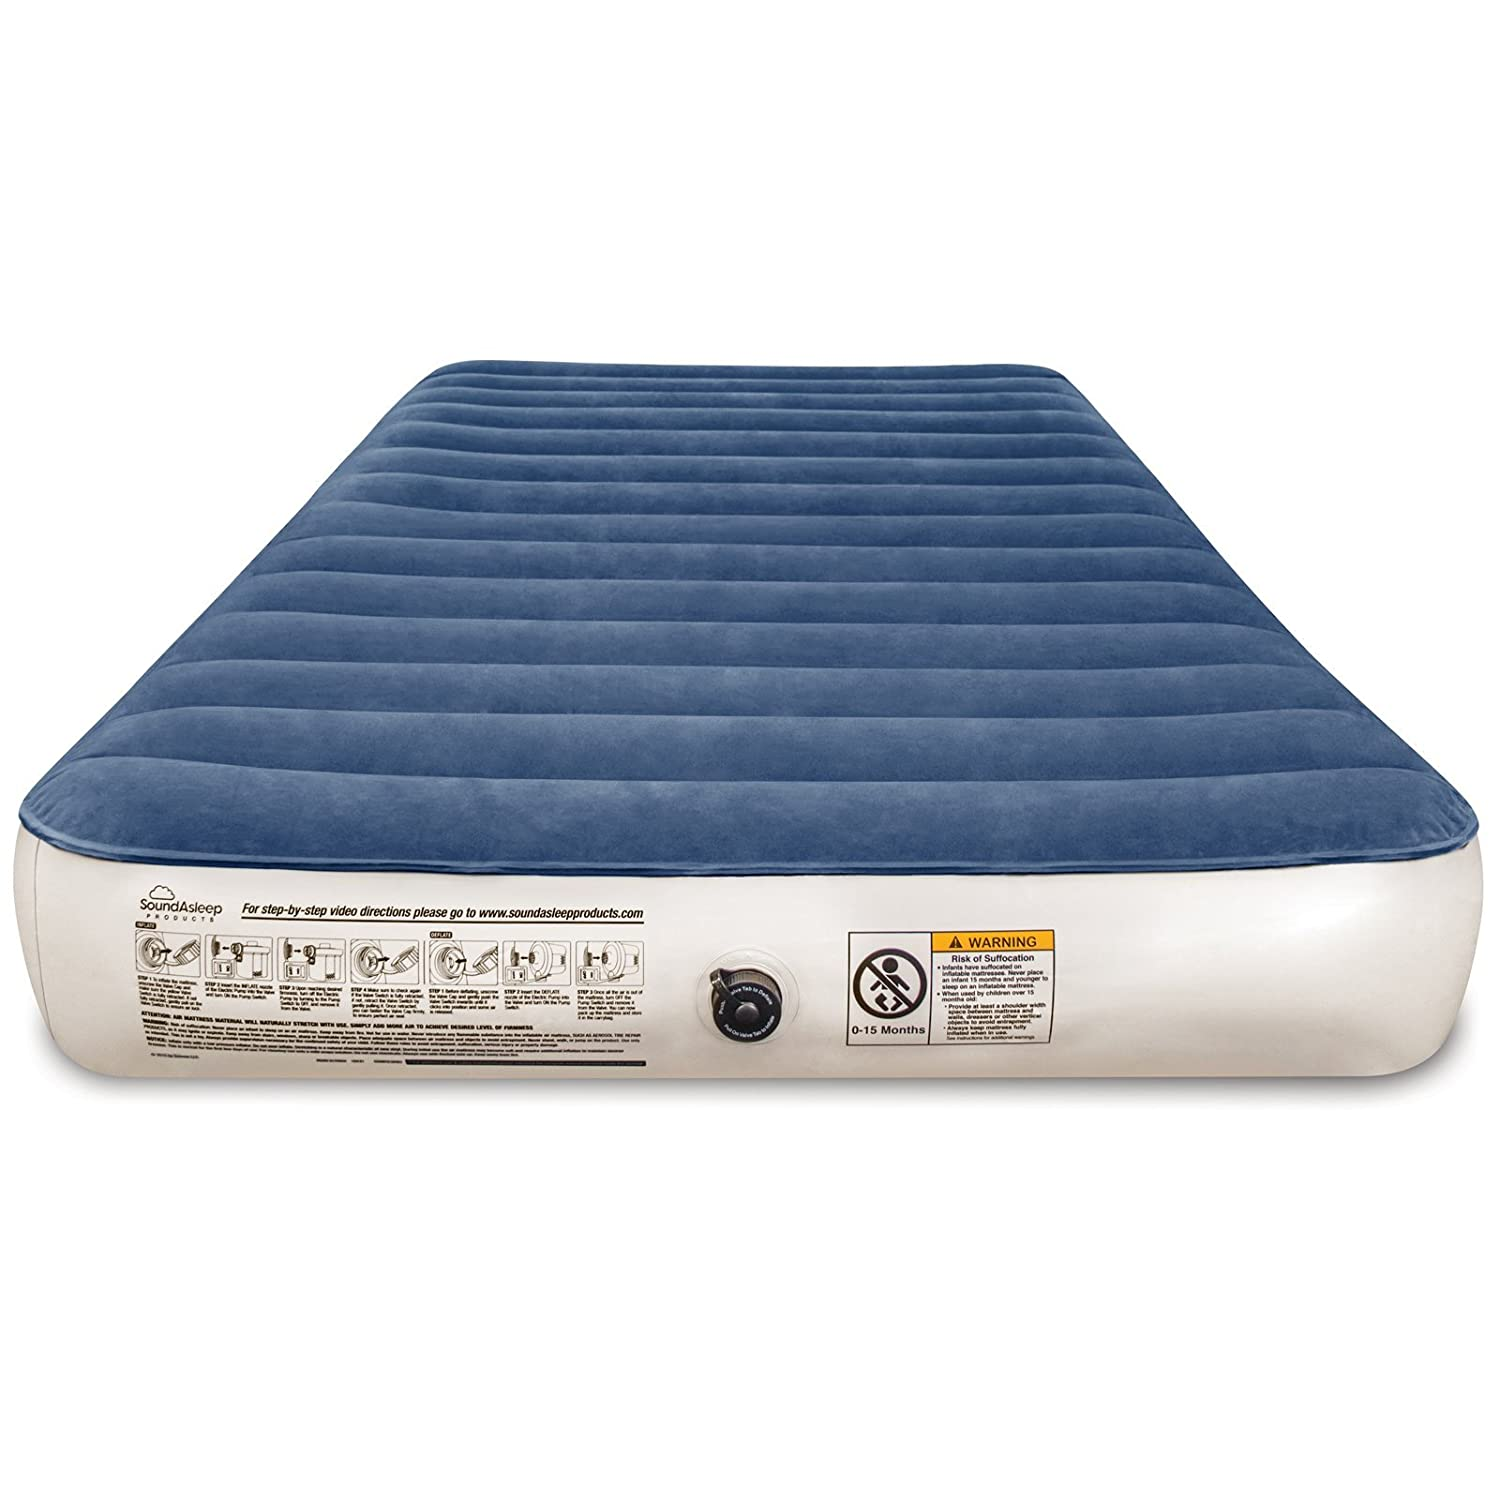 SoundAsleep Camping Series Air Mattress with Included Rechargeable Air Pump